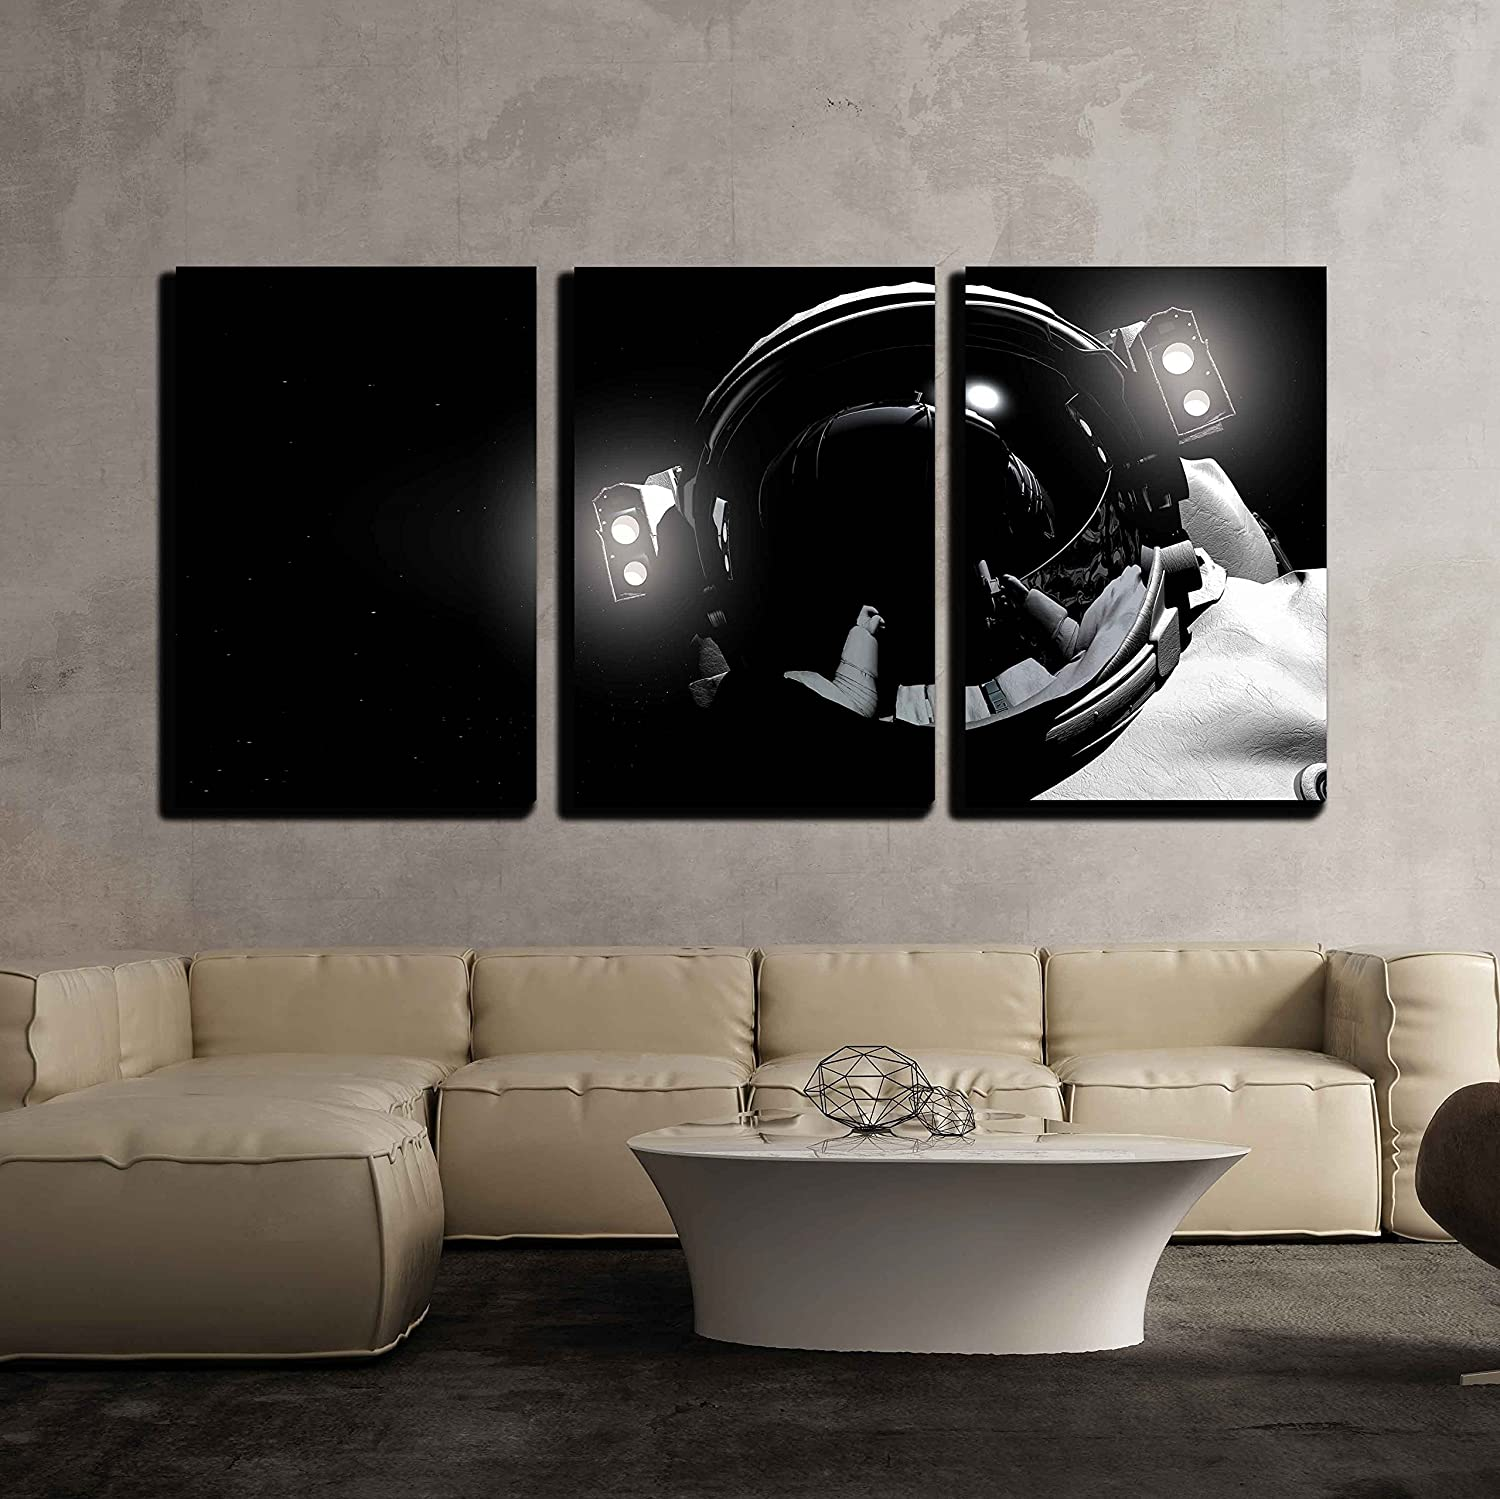 3 Piece Canvas Wall Art - The Astronaut in Outer Space - Modern Home Art Stretched and Framed Ready to Hang - 24